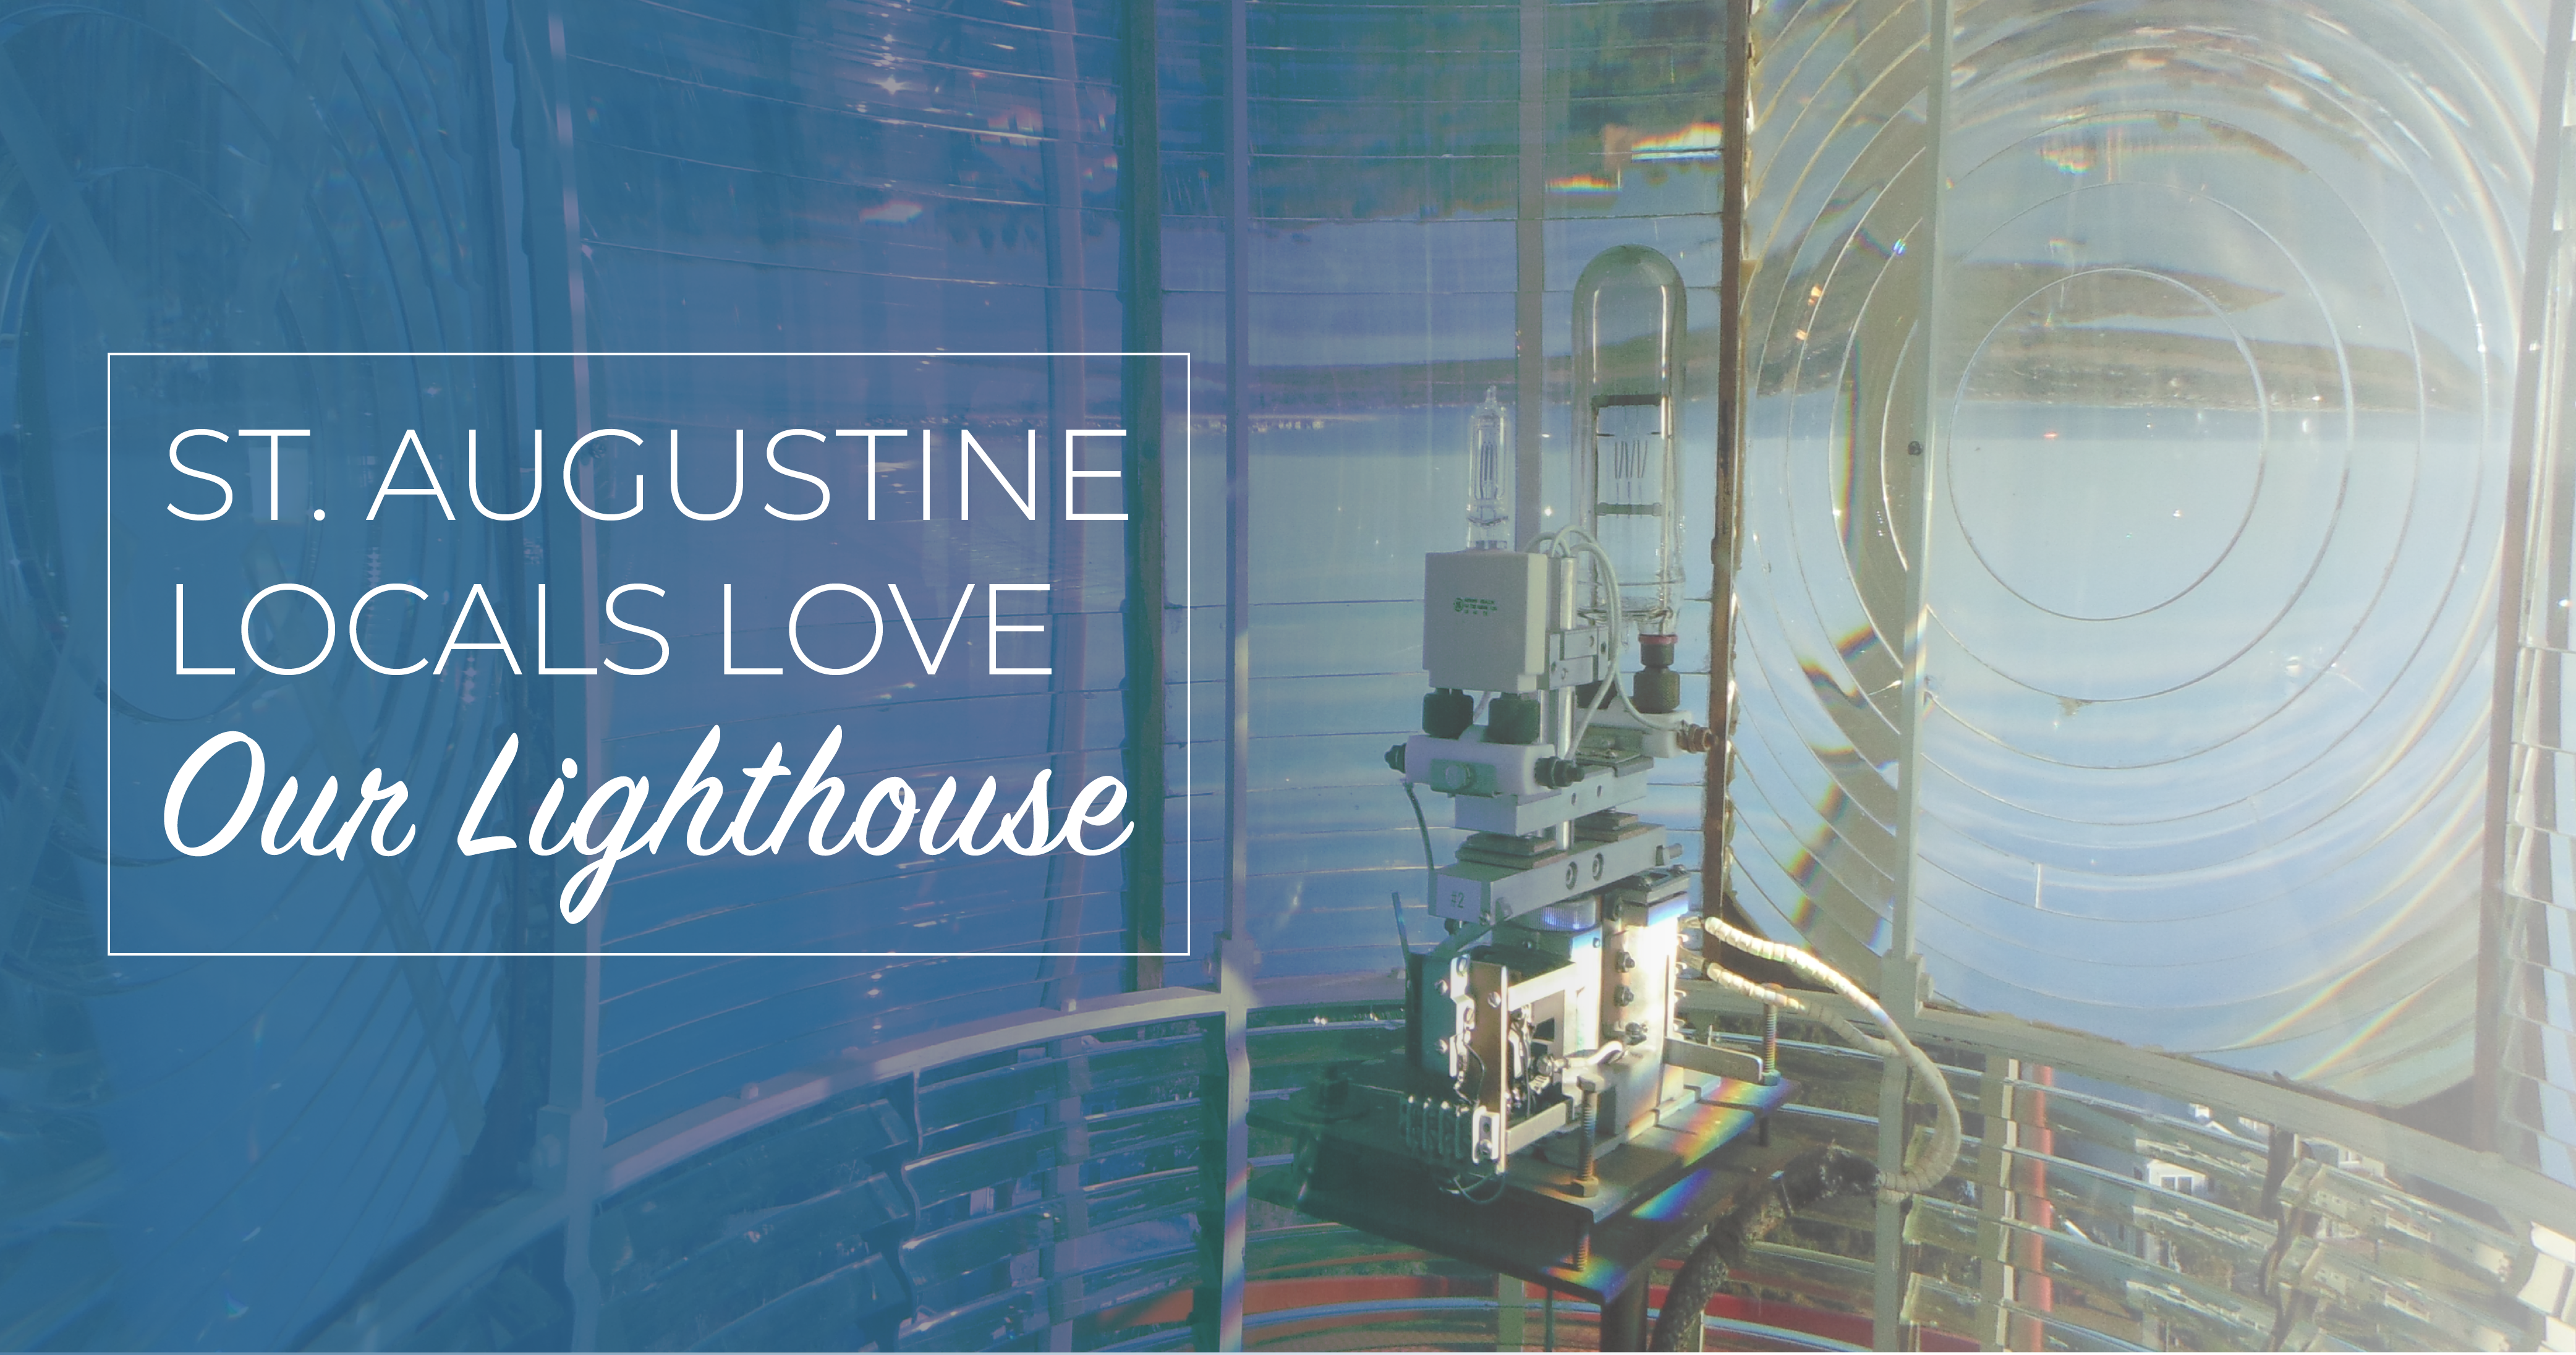 St. Augustine Locals Love: Our Lighthouse